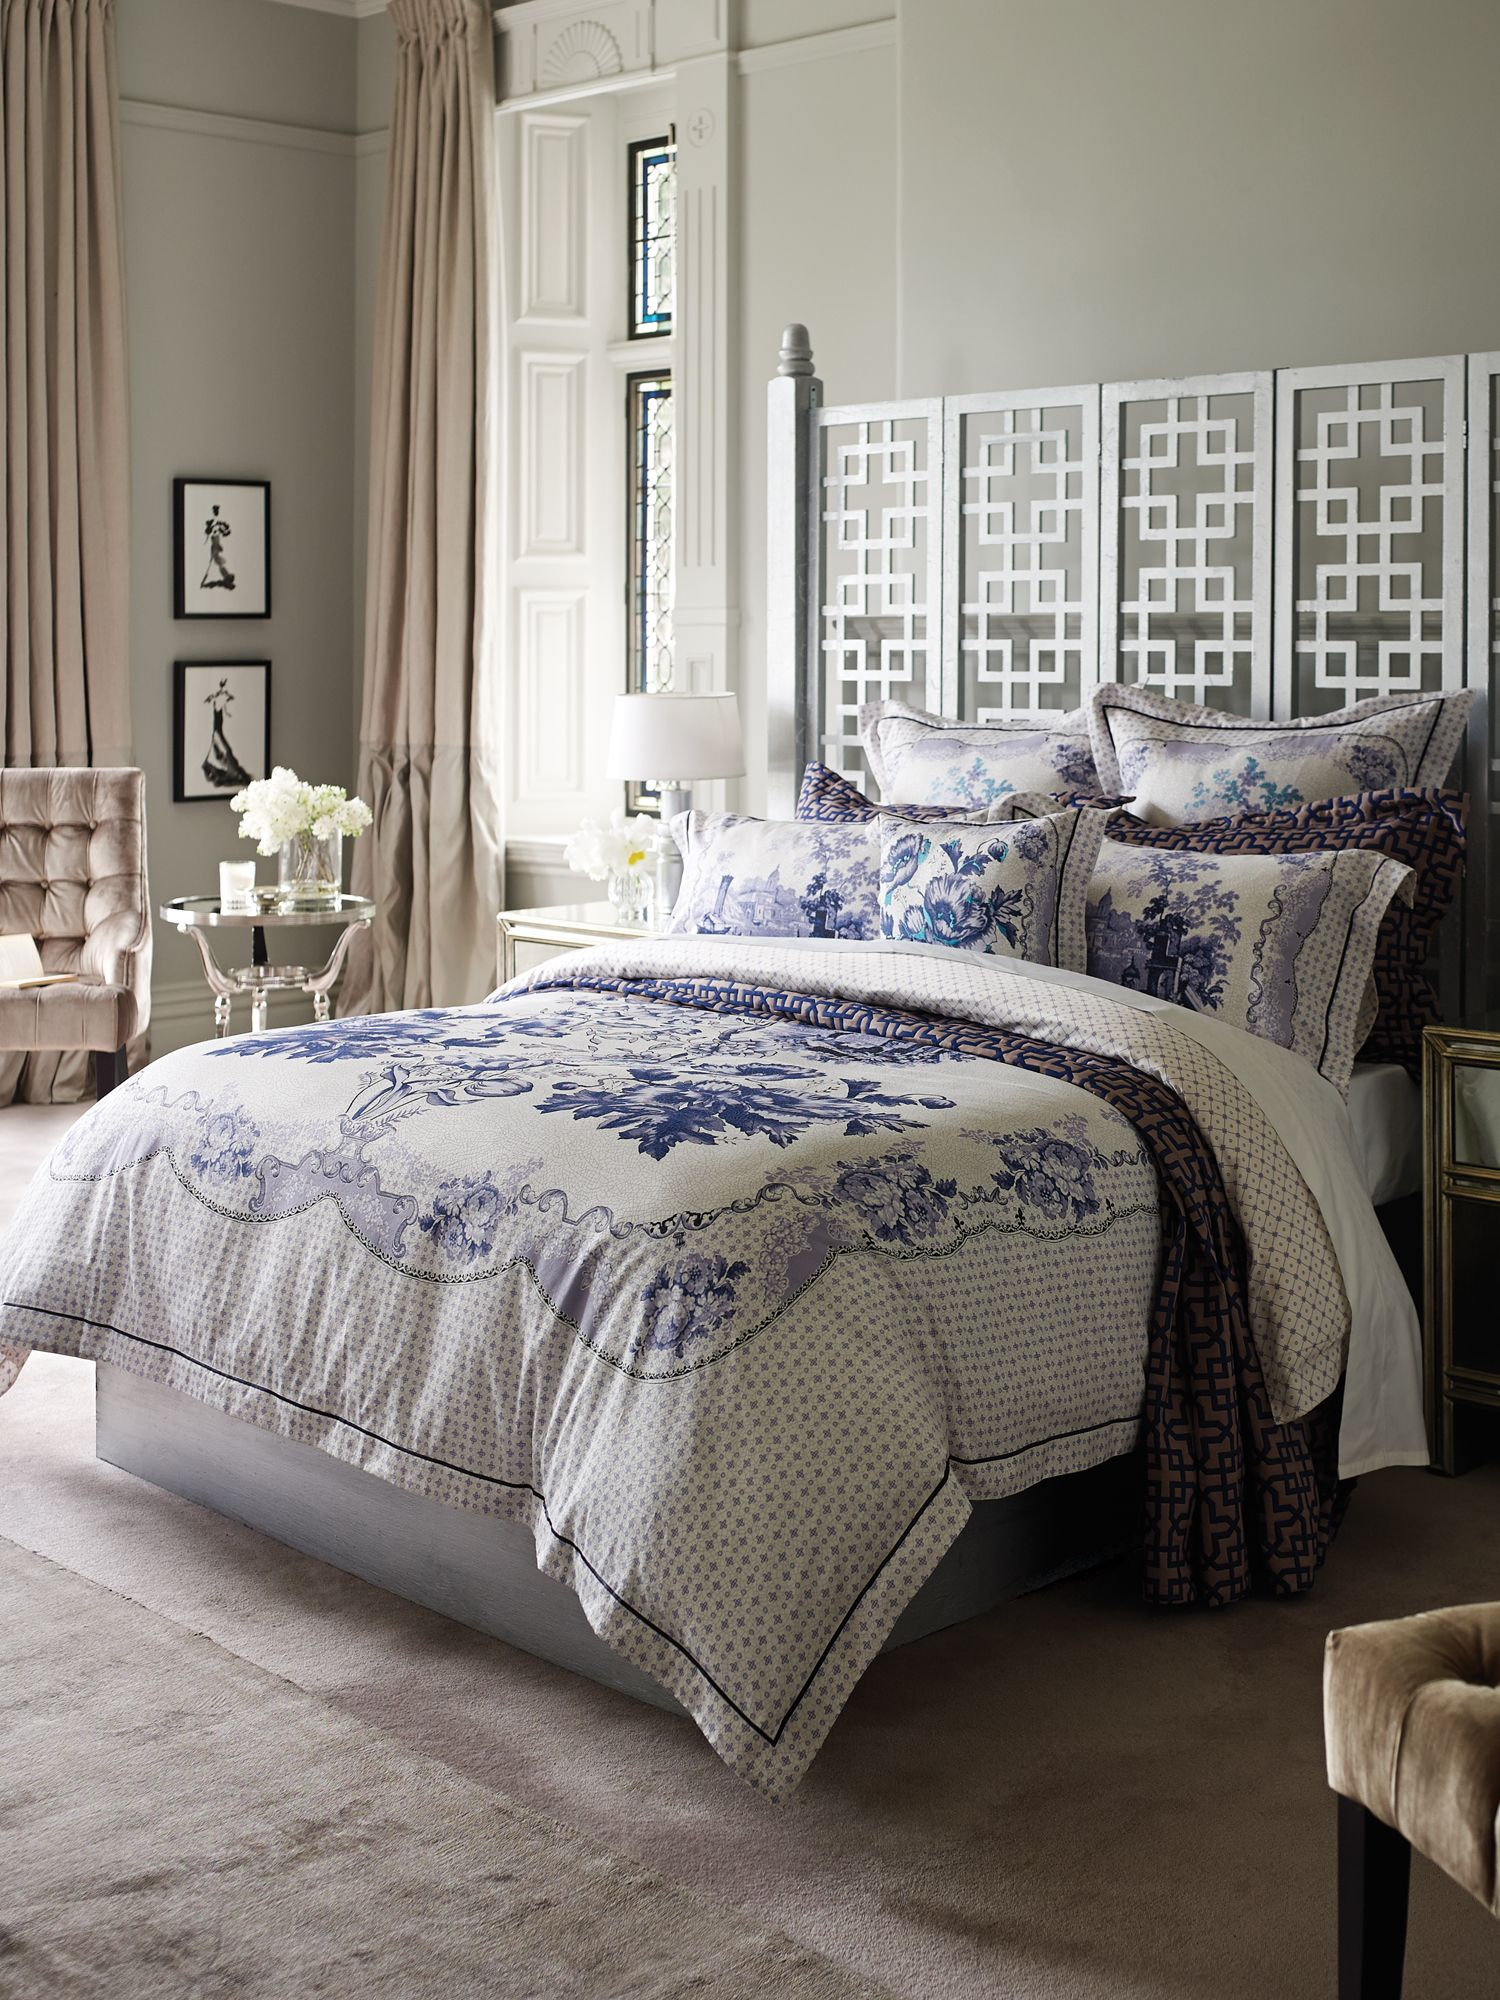 Copeland peacock bed linen